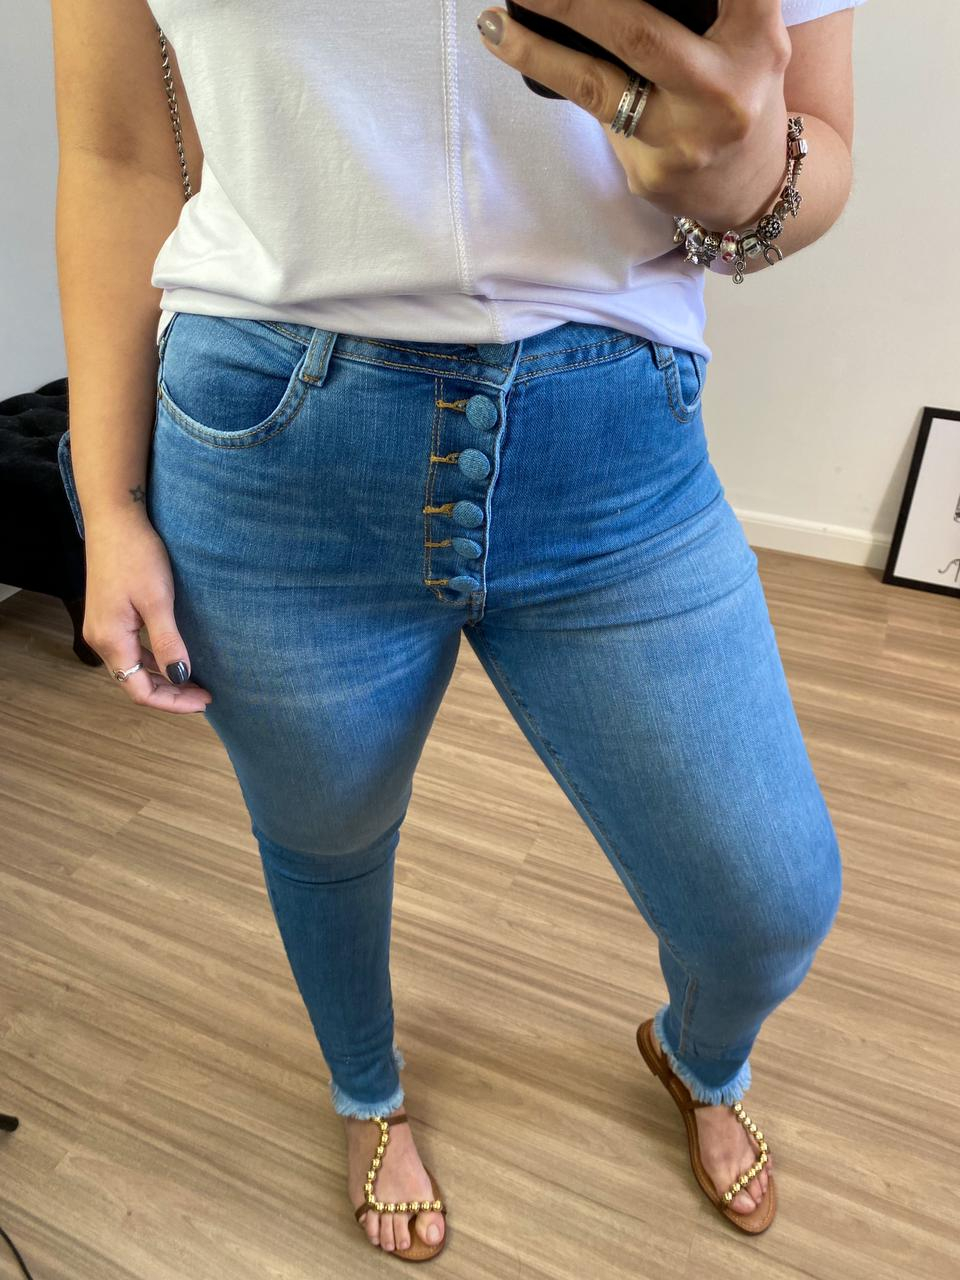 SKINNY JEANS BOTOES